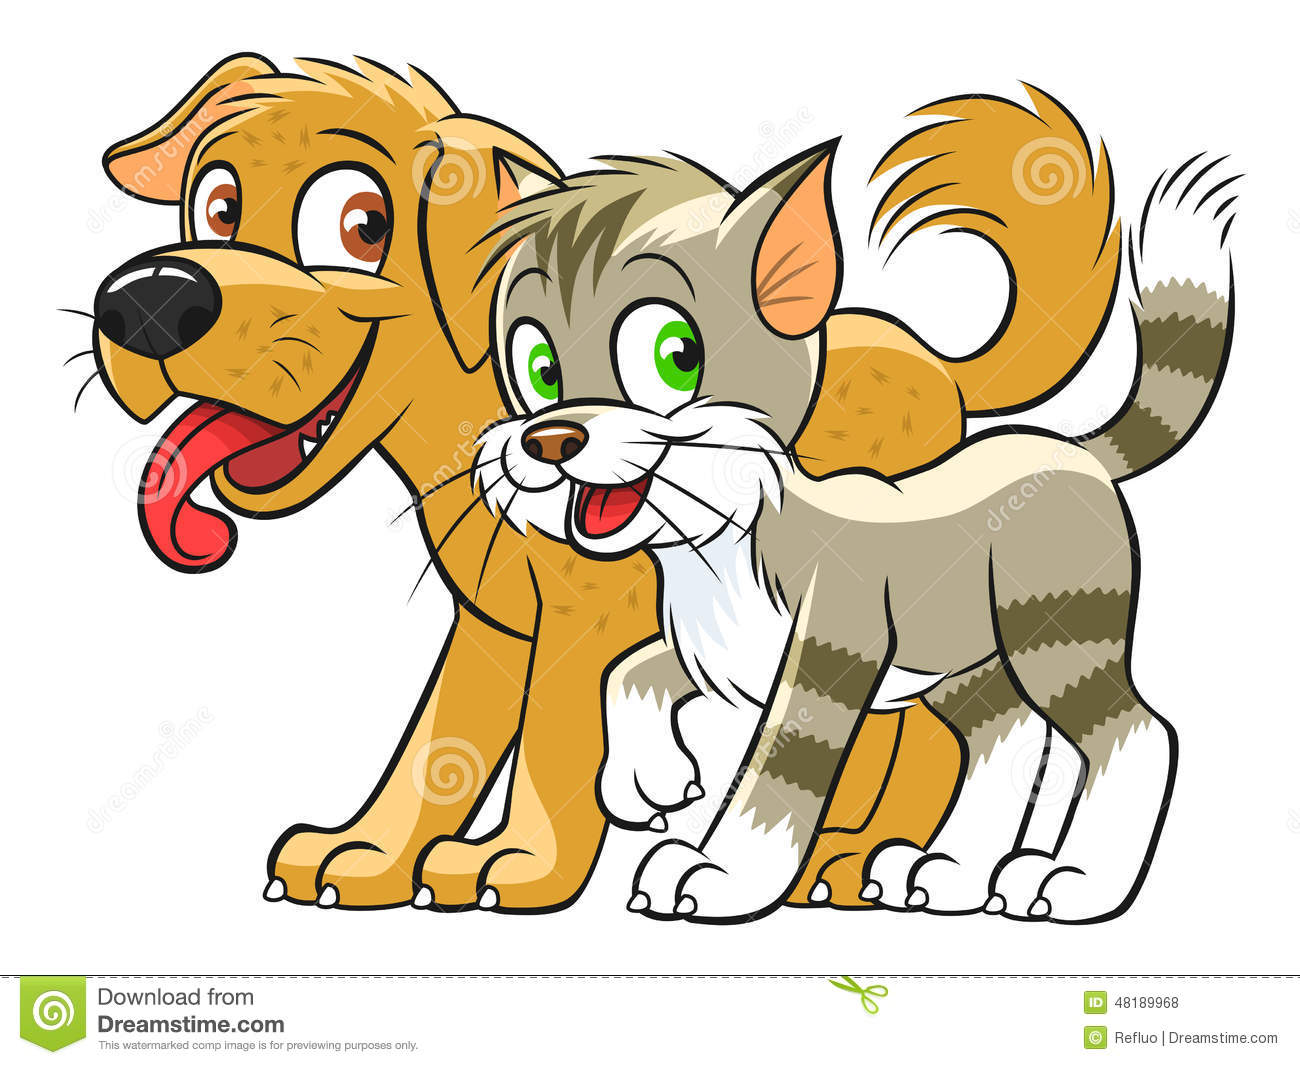 Cute cat and dog stock vector. Illustration of character